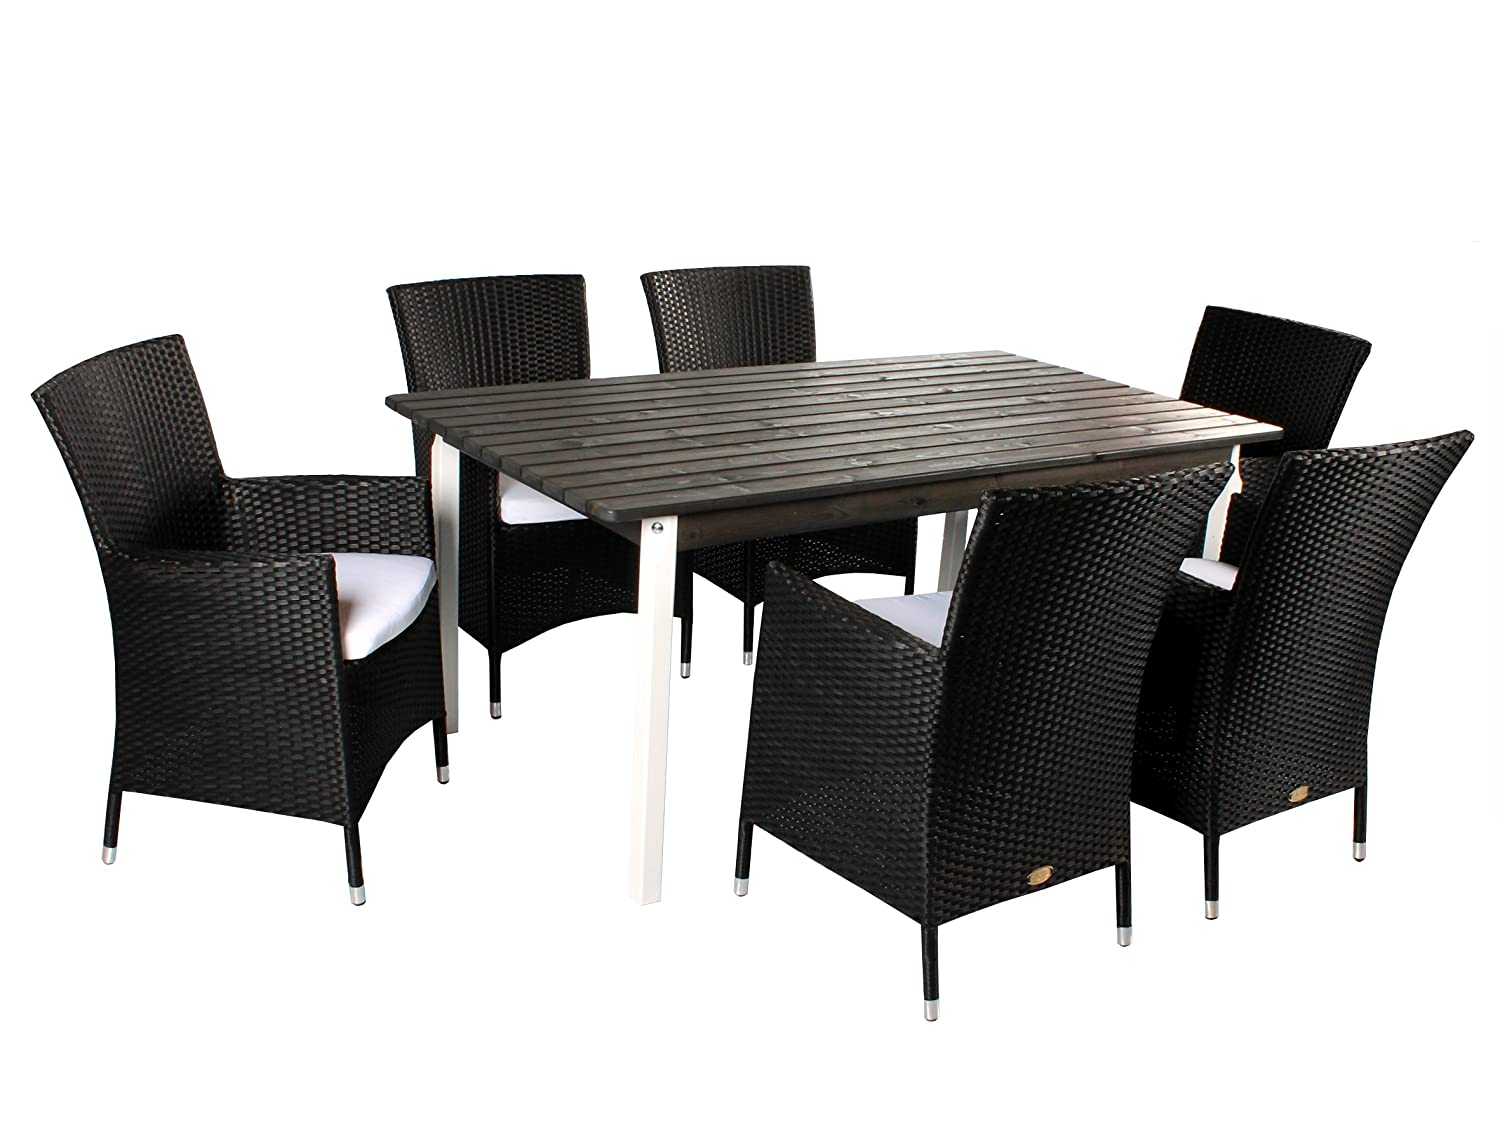 7tlg polyrattan holz sitzgruppe salento sessel und 160er tisch wei taupegrau sessel schwarz. Black Bedroom Furniture Sets. Home Design Ideas